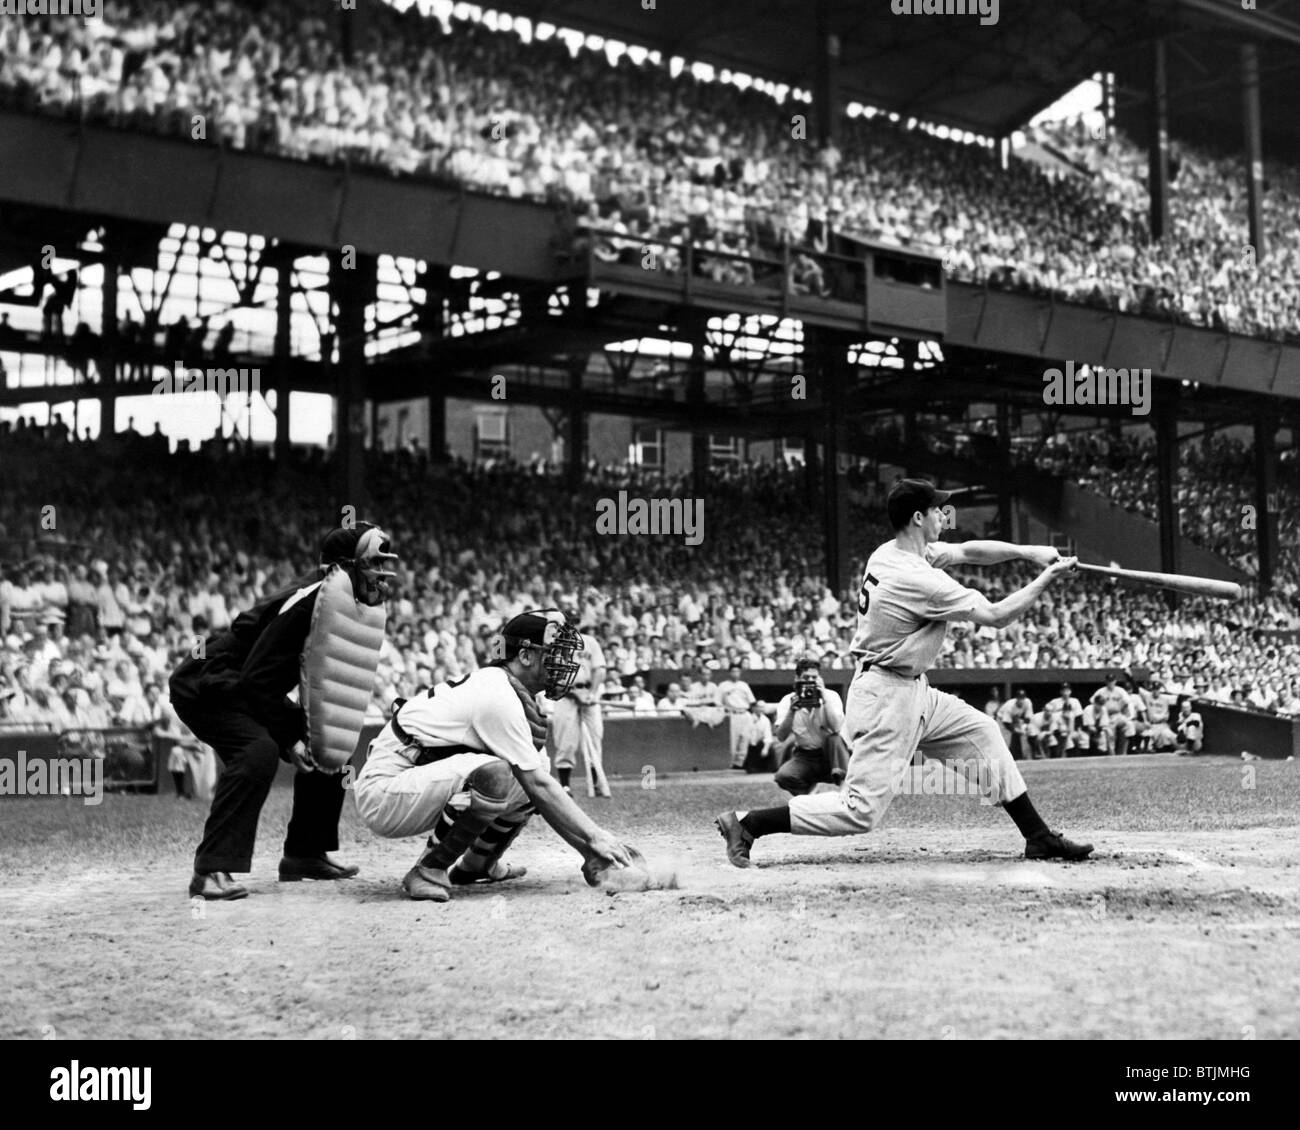 Joe DiMaggio breaks the record for hitting safely in consecutive games. This hit brought his streak to 42 games, - Stock Image